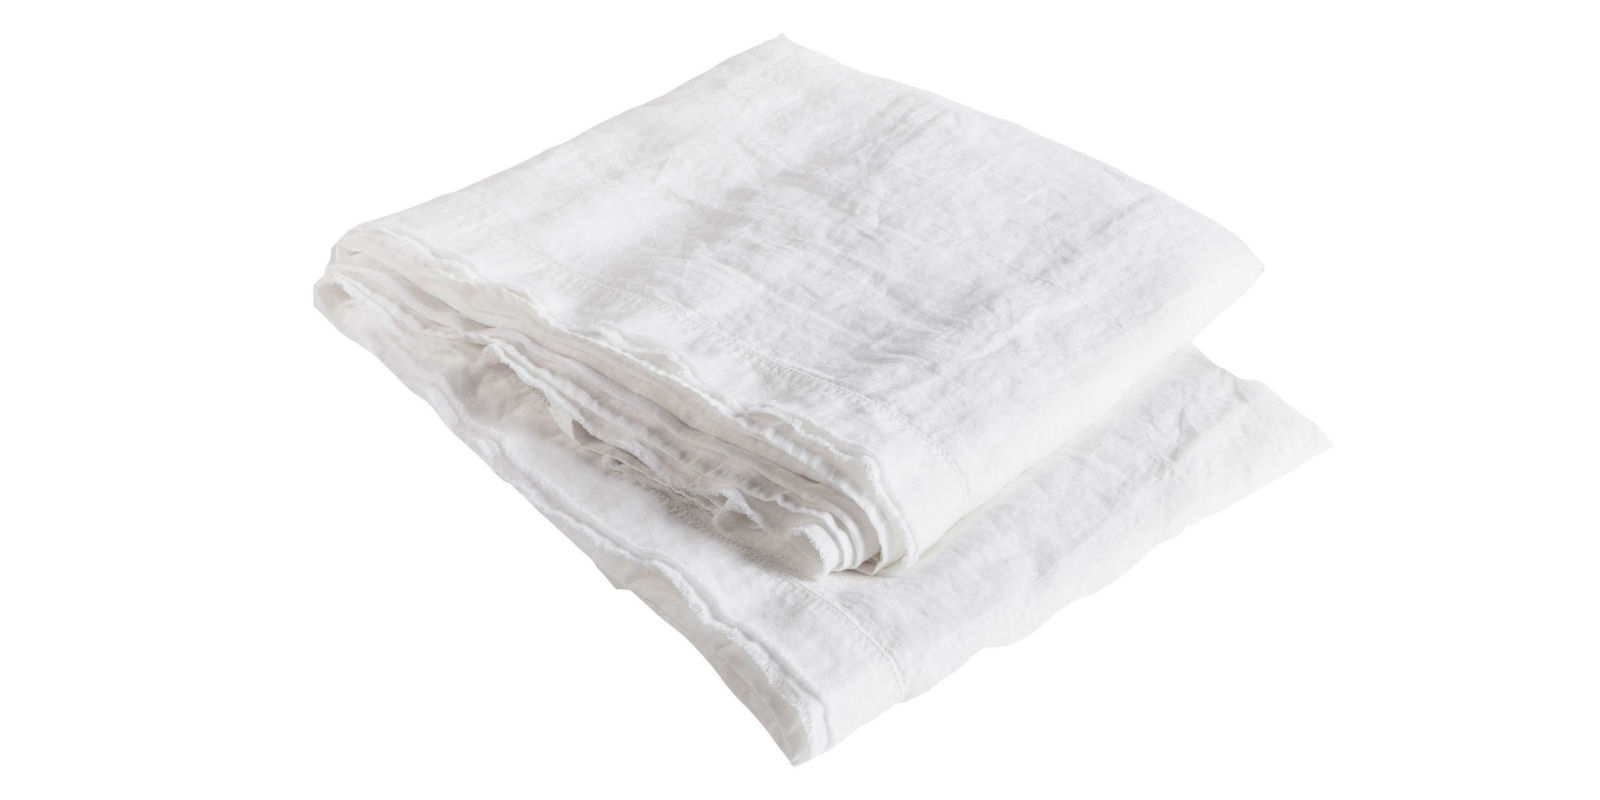 Linen Bedding Reviews Saphyr Pure Linen Bedding Review Price And Features